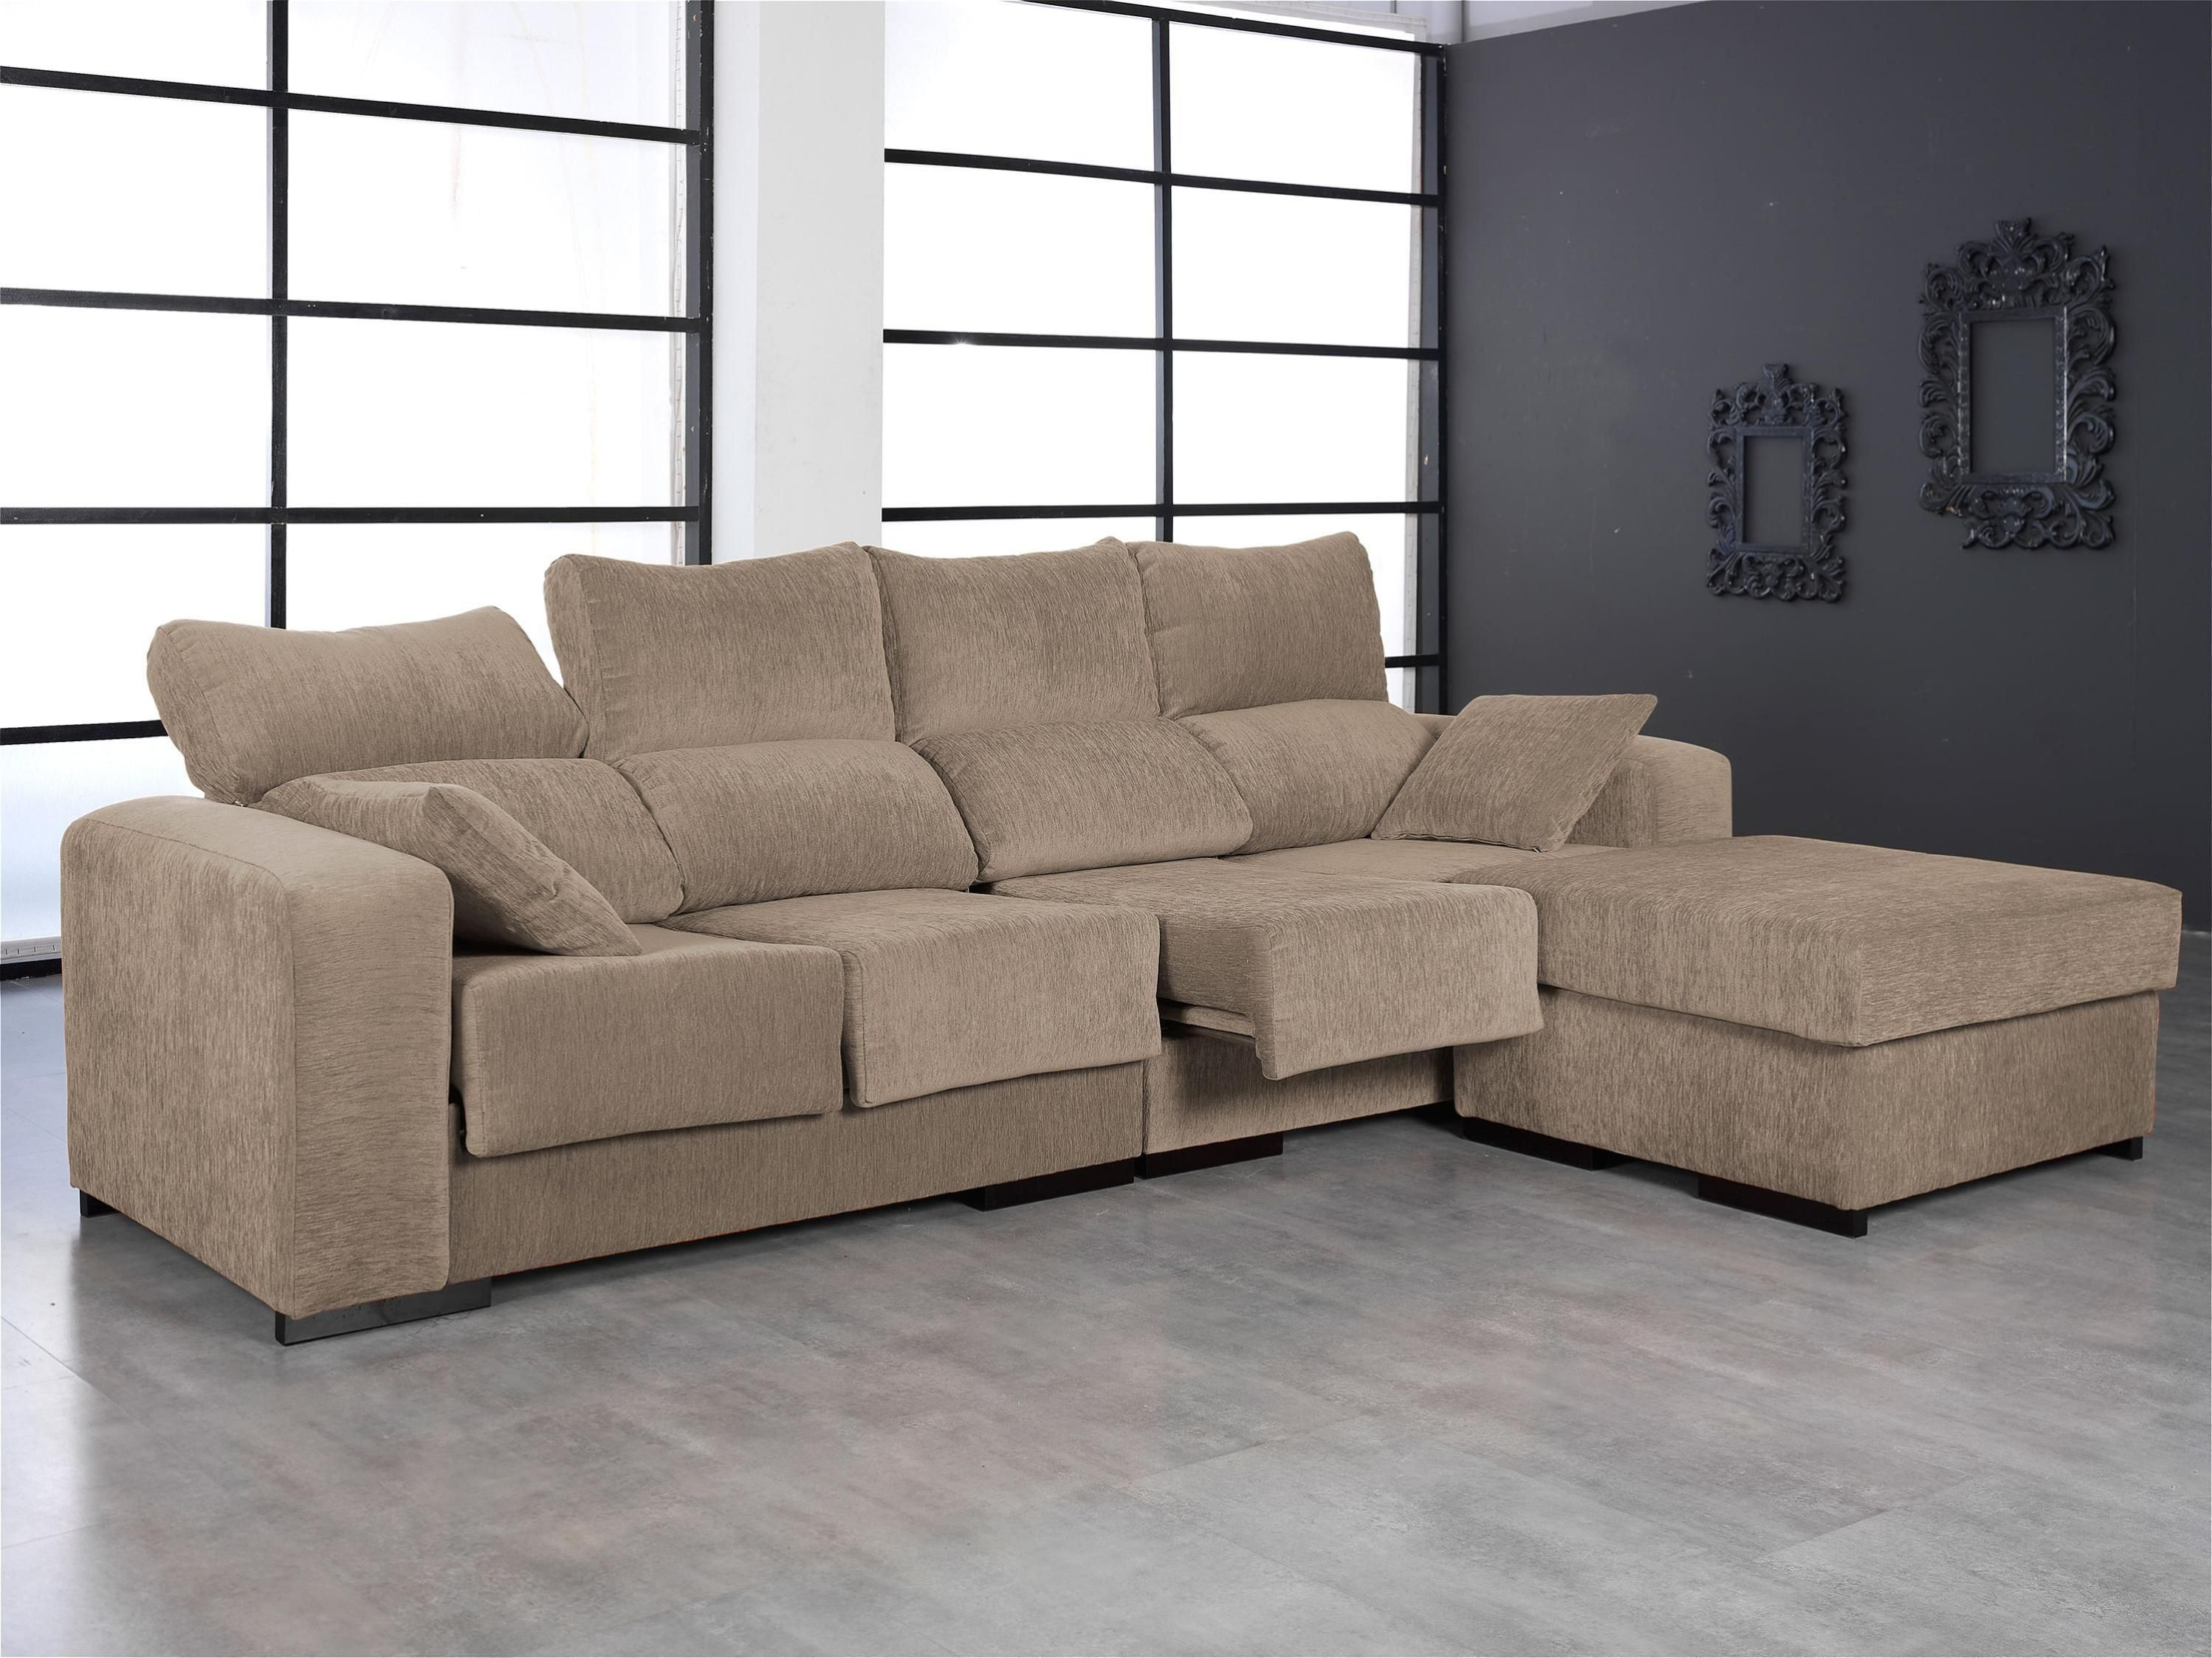 Sofas de diseo baratos sillones mesas y sofs de exterior ideales para crear ambientes chill out - Dazzling sofas baratos beautifying your house ...